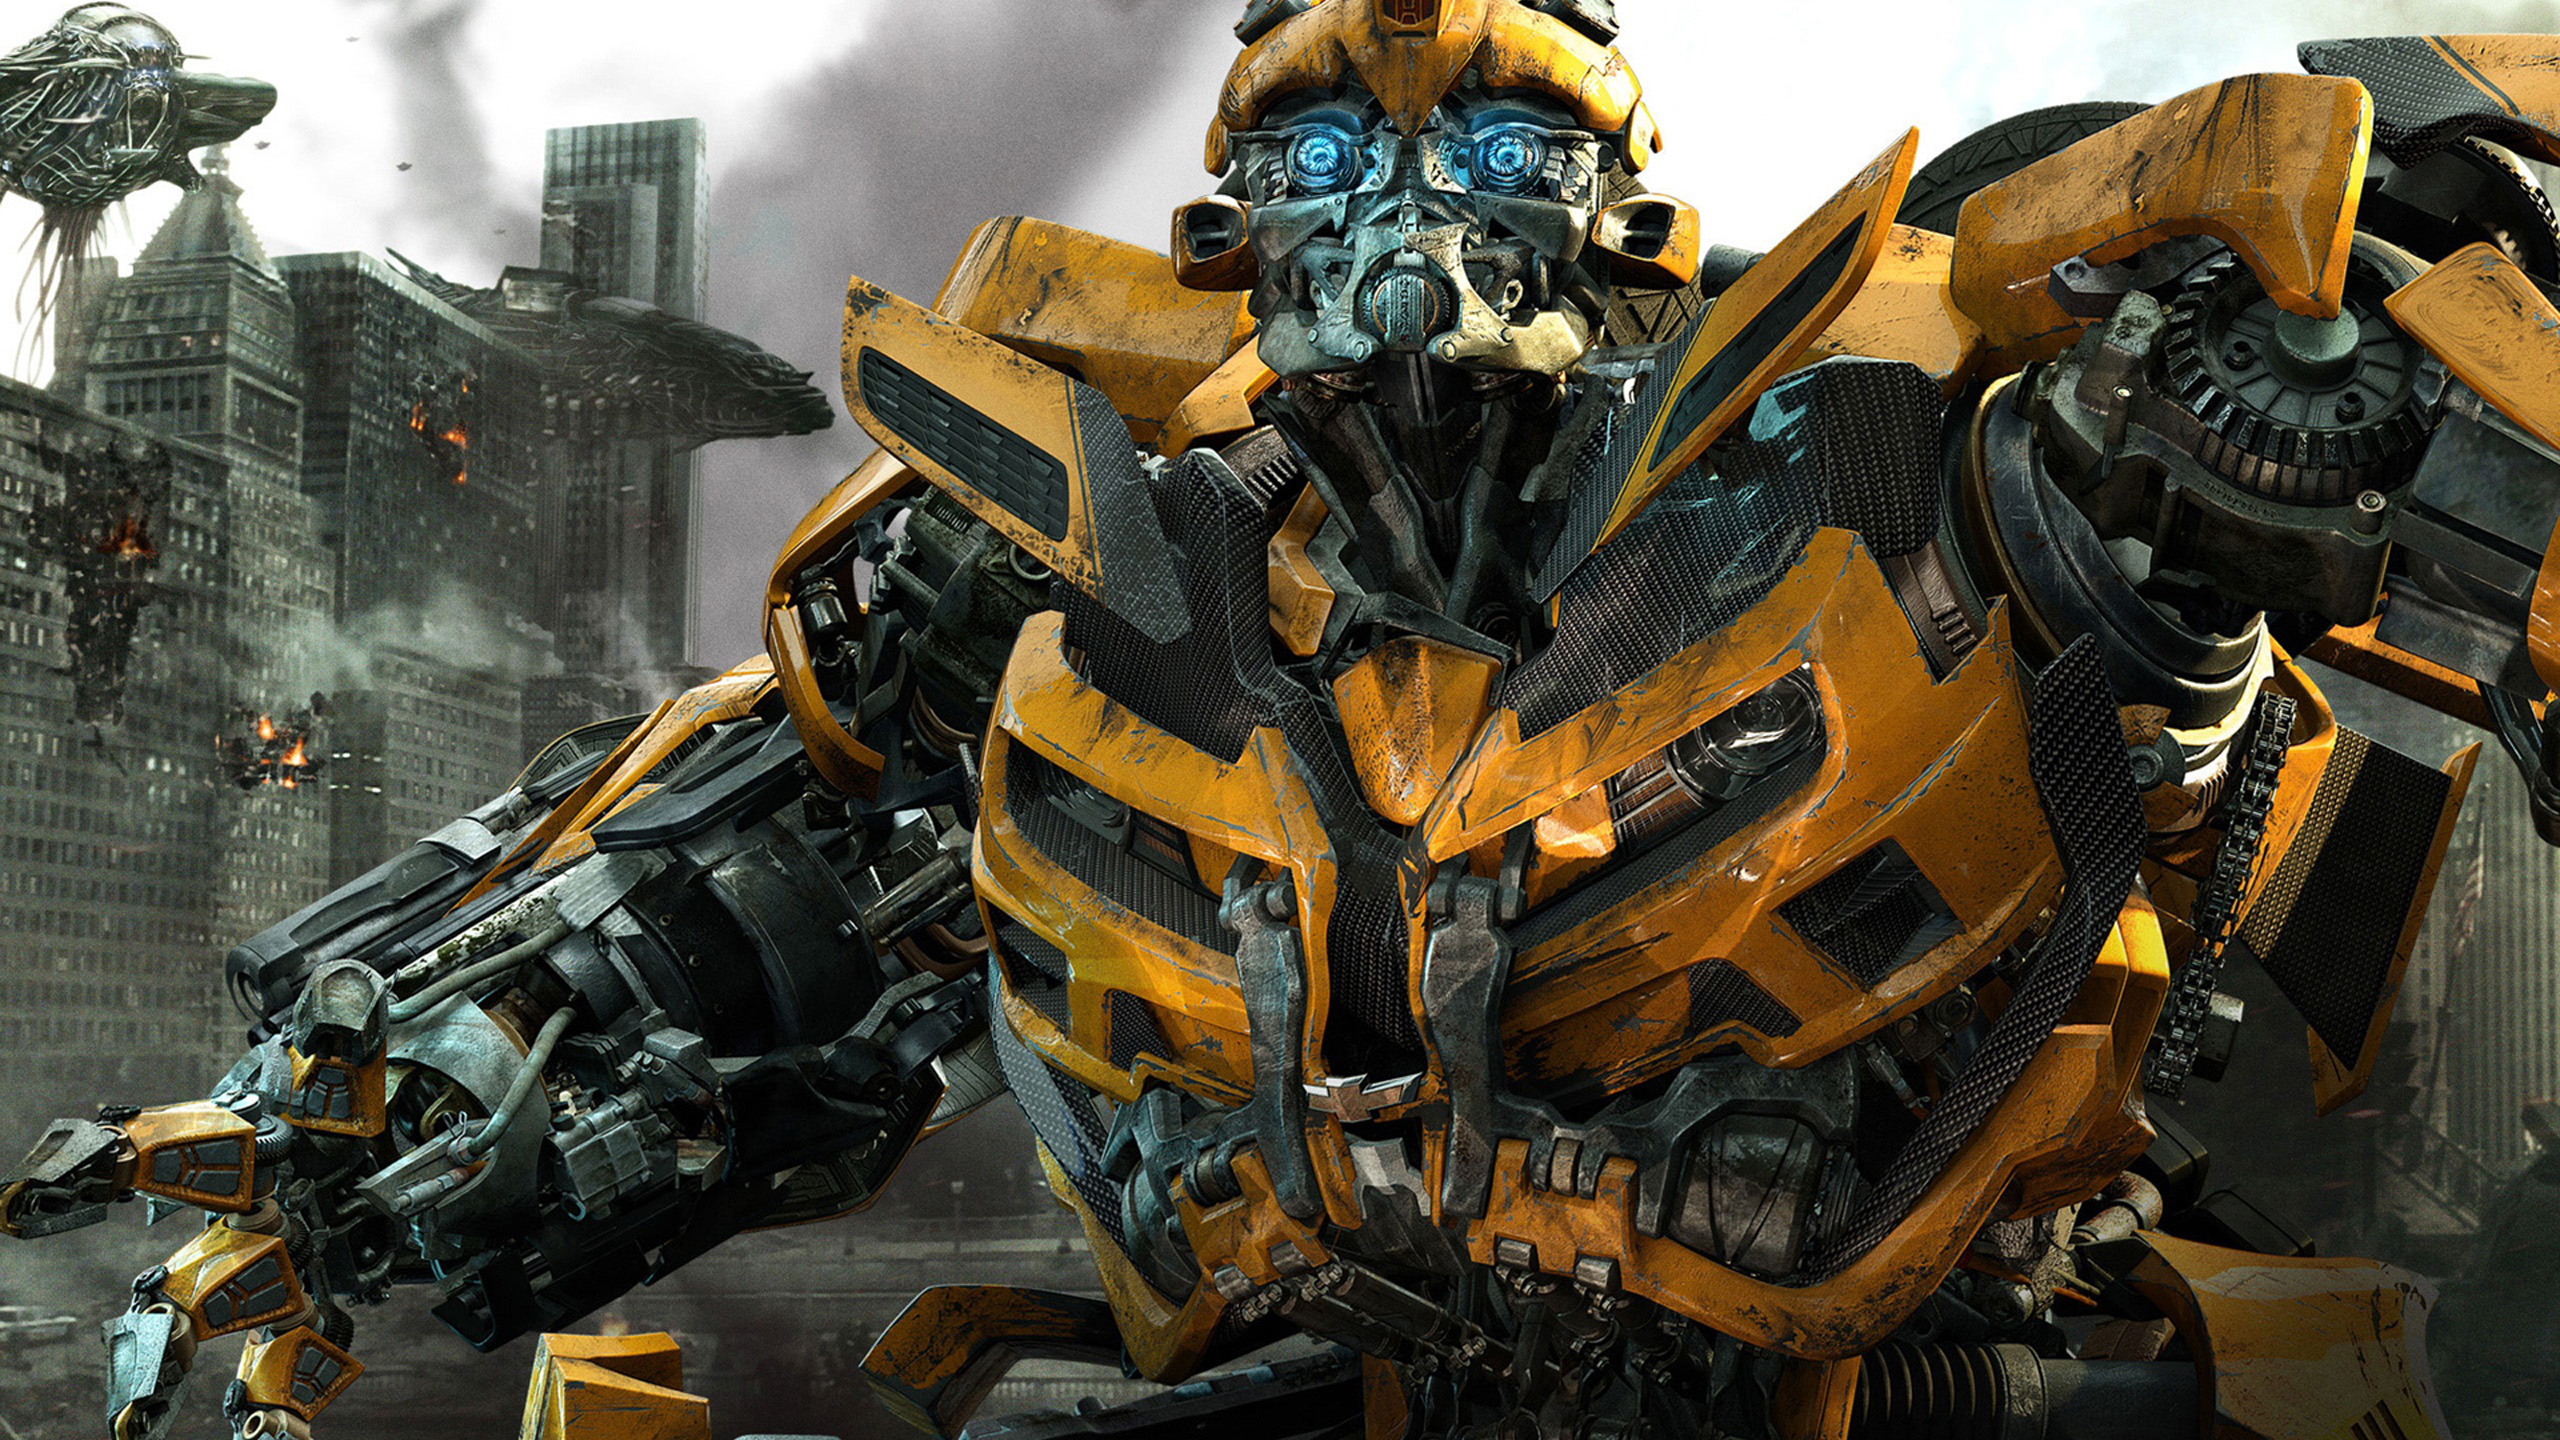 HD Transformers Wallpapers amp Backgrounds For Download 2560x1440